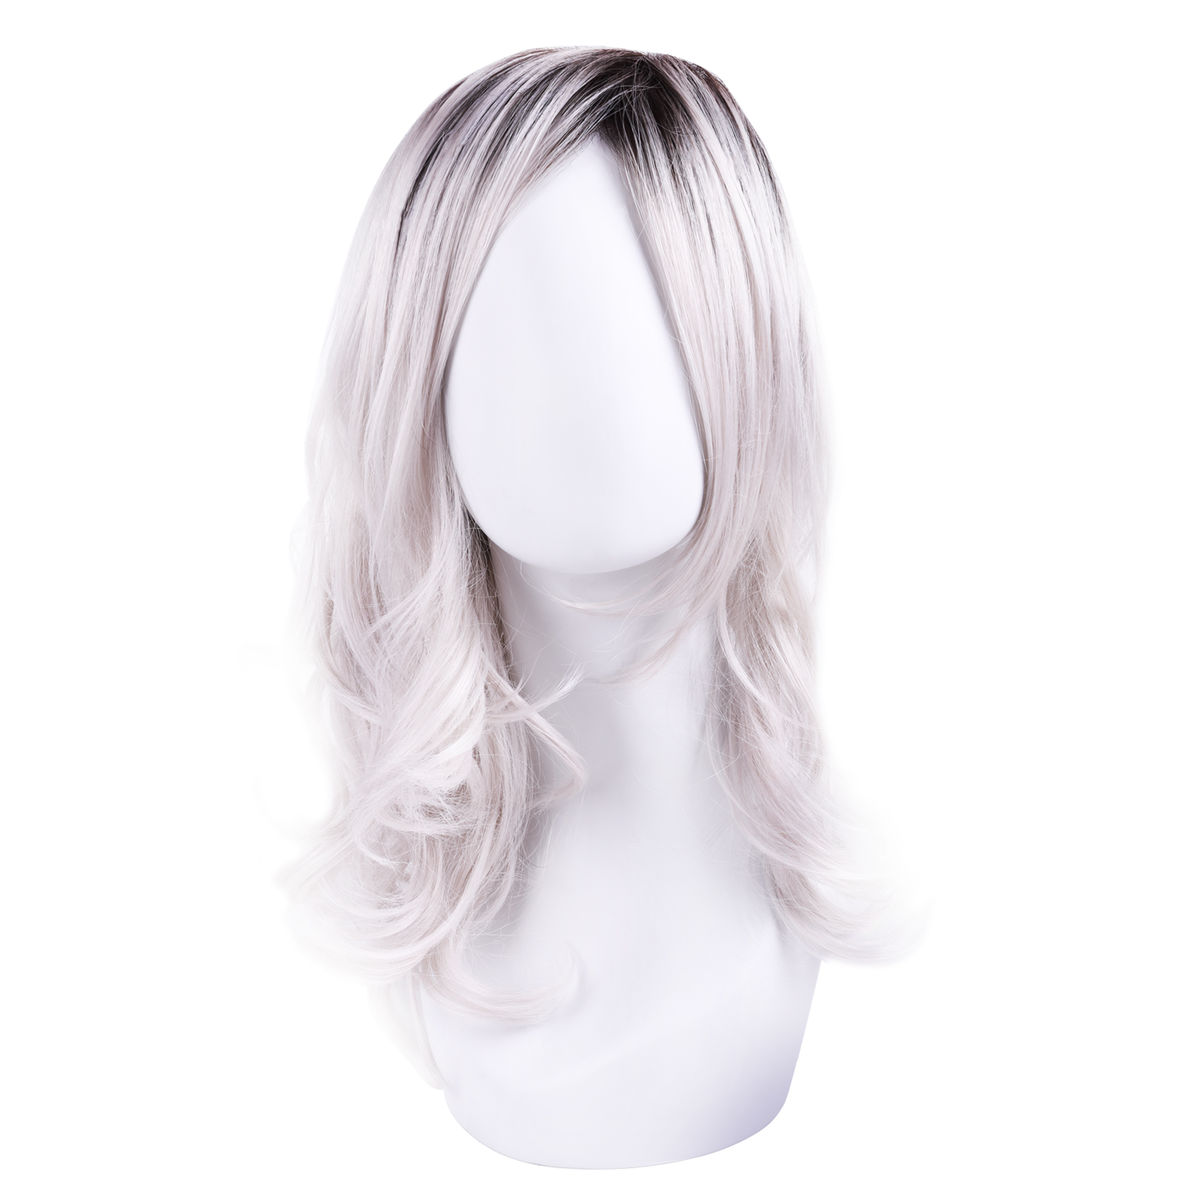 Perika HAIRDO Whiteout Platinum